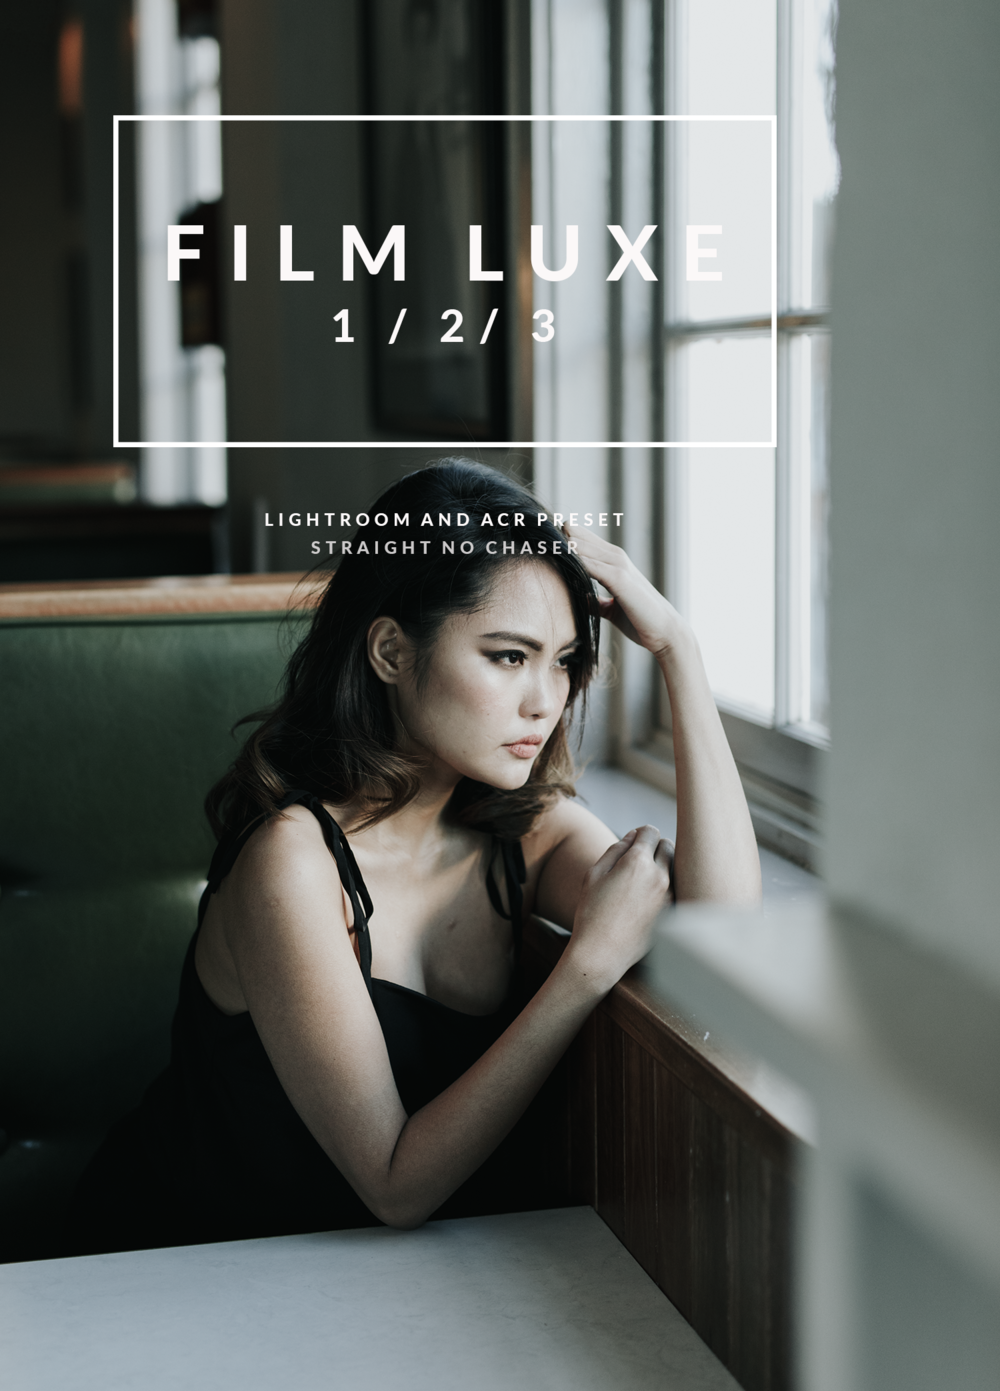 Film Luxe- A cool toned cinematic Lightroom and Photoshop ACR preset